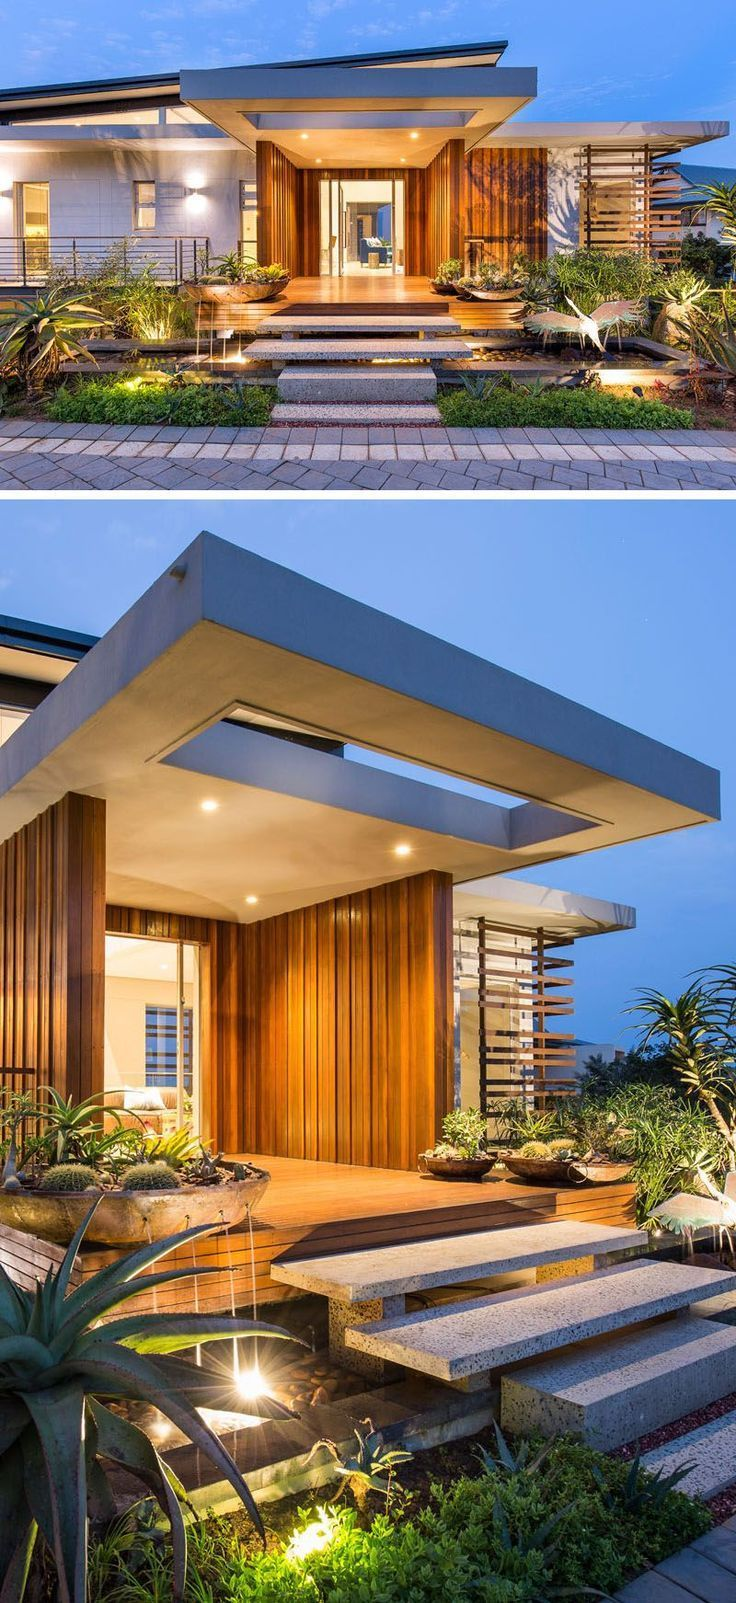 Modern residence that has a really eye-catching appearance